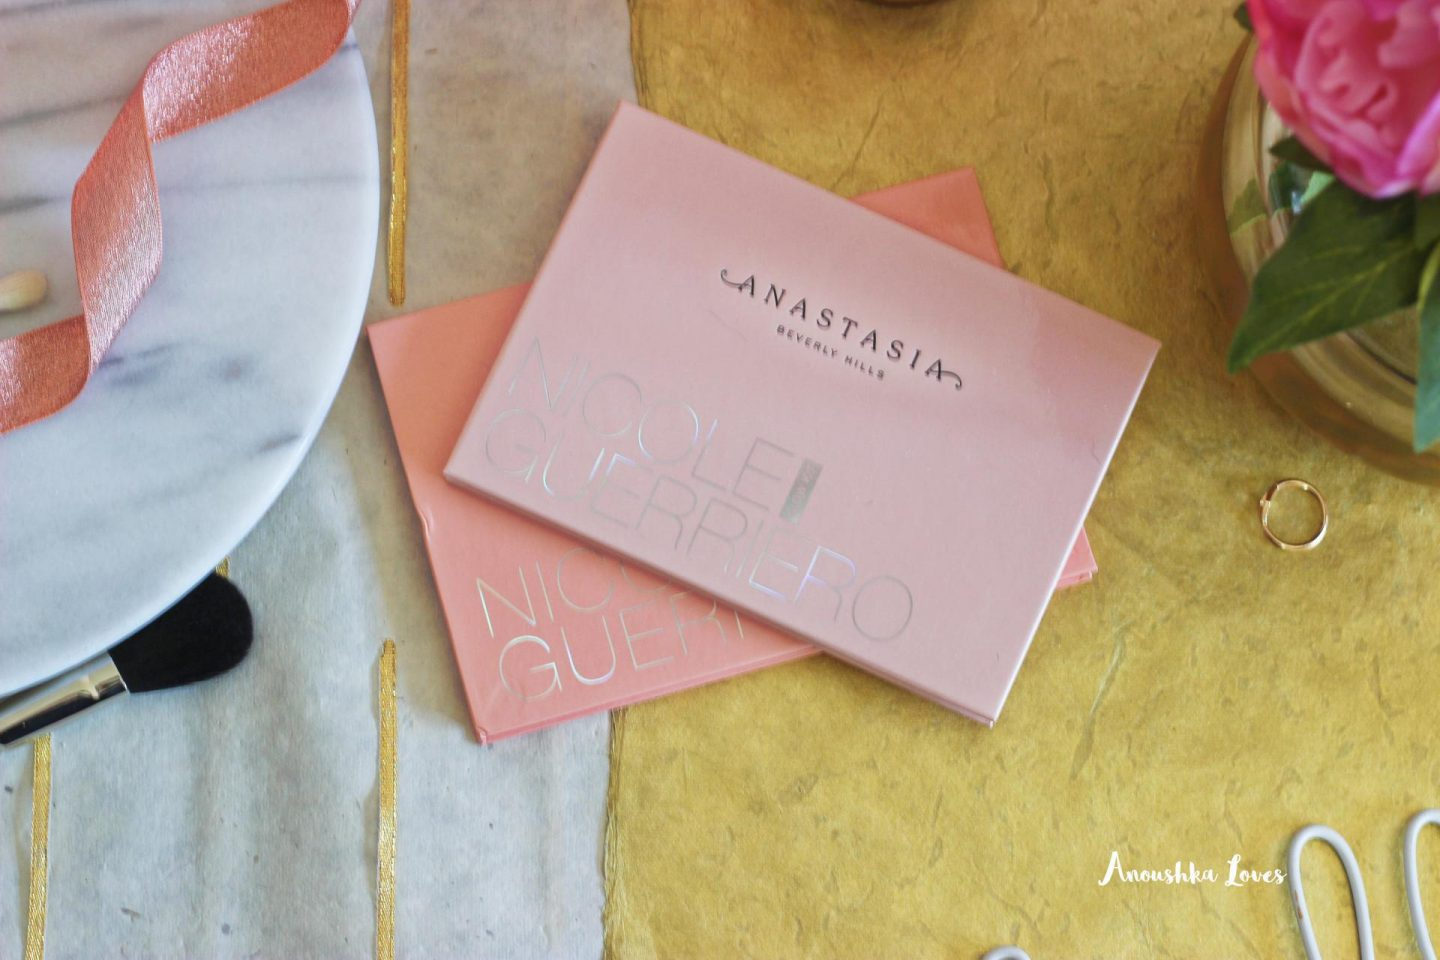 How to spot a Fake Anastasia Beverly Hills Nicole Guerriero Palette